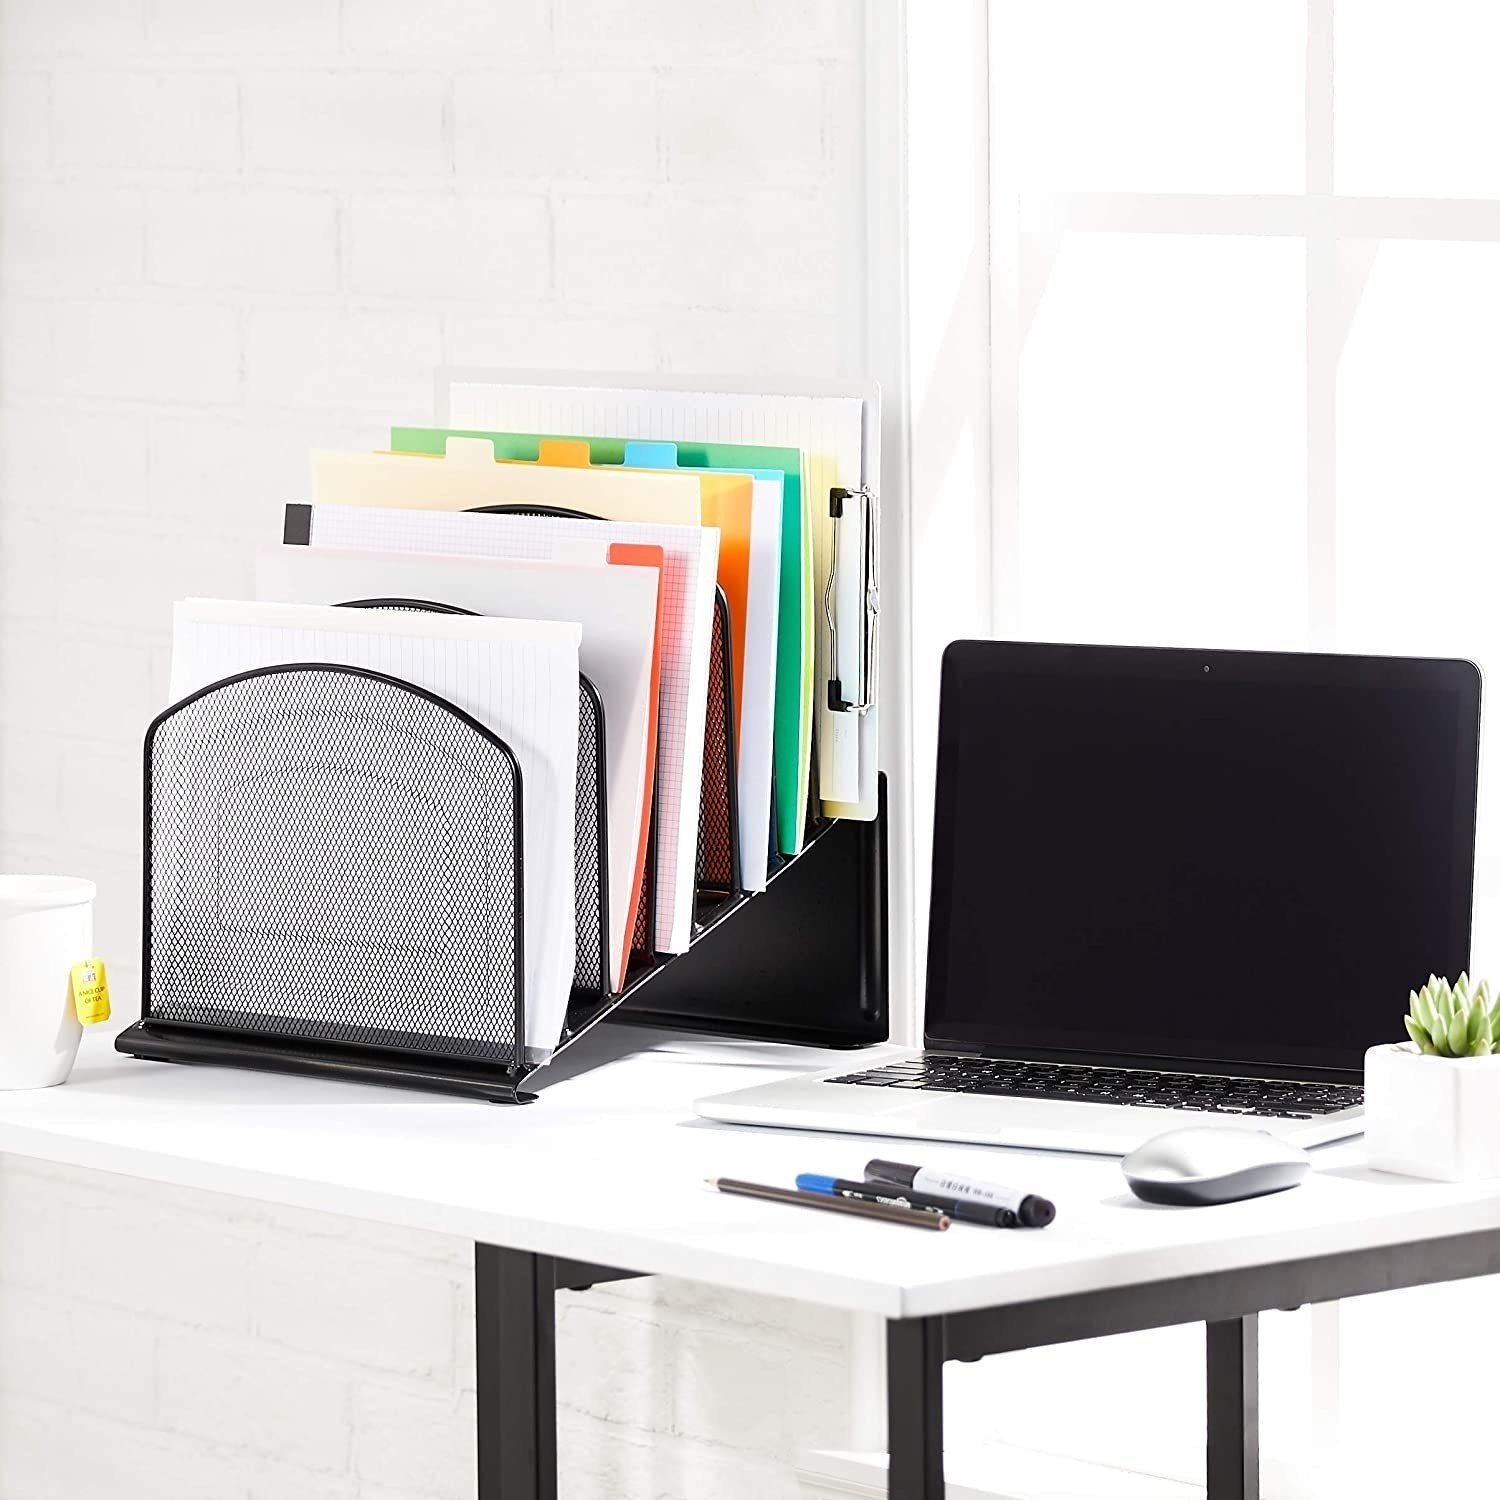 The mesh-sorter pictured on a work desk with files and documents in it.